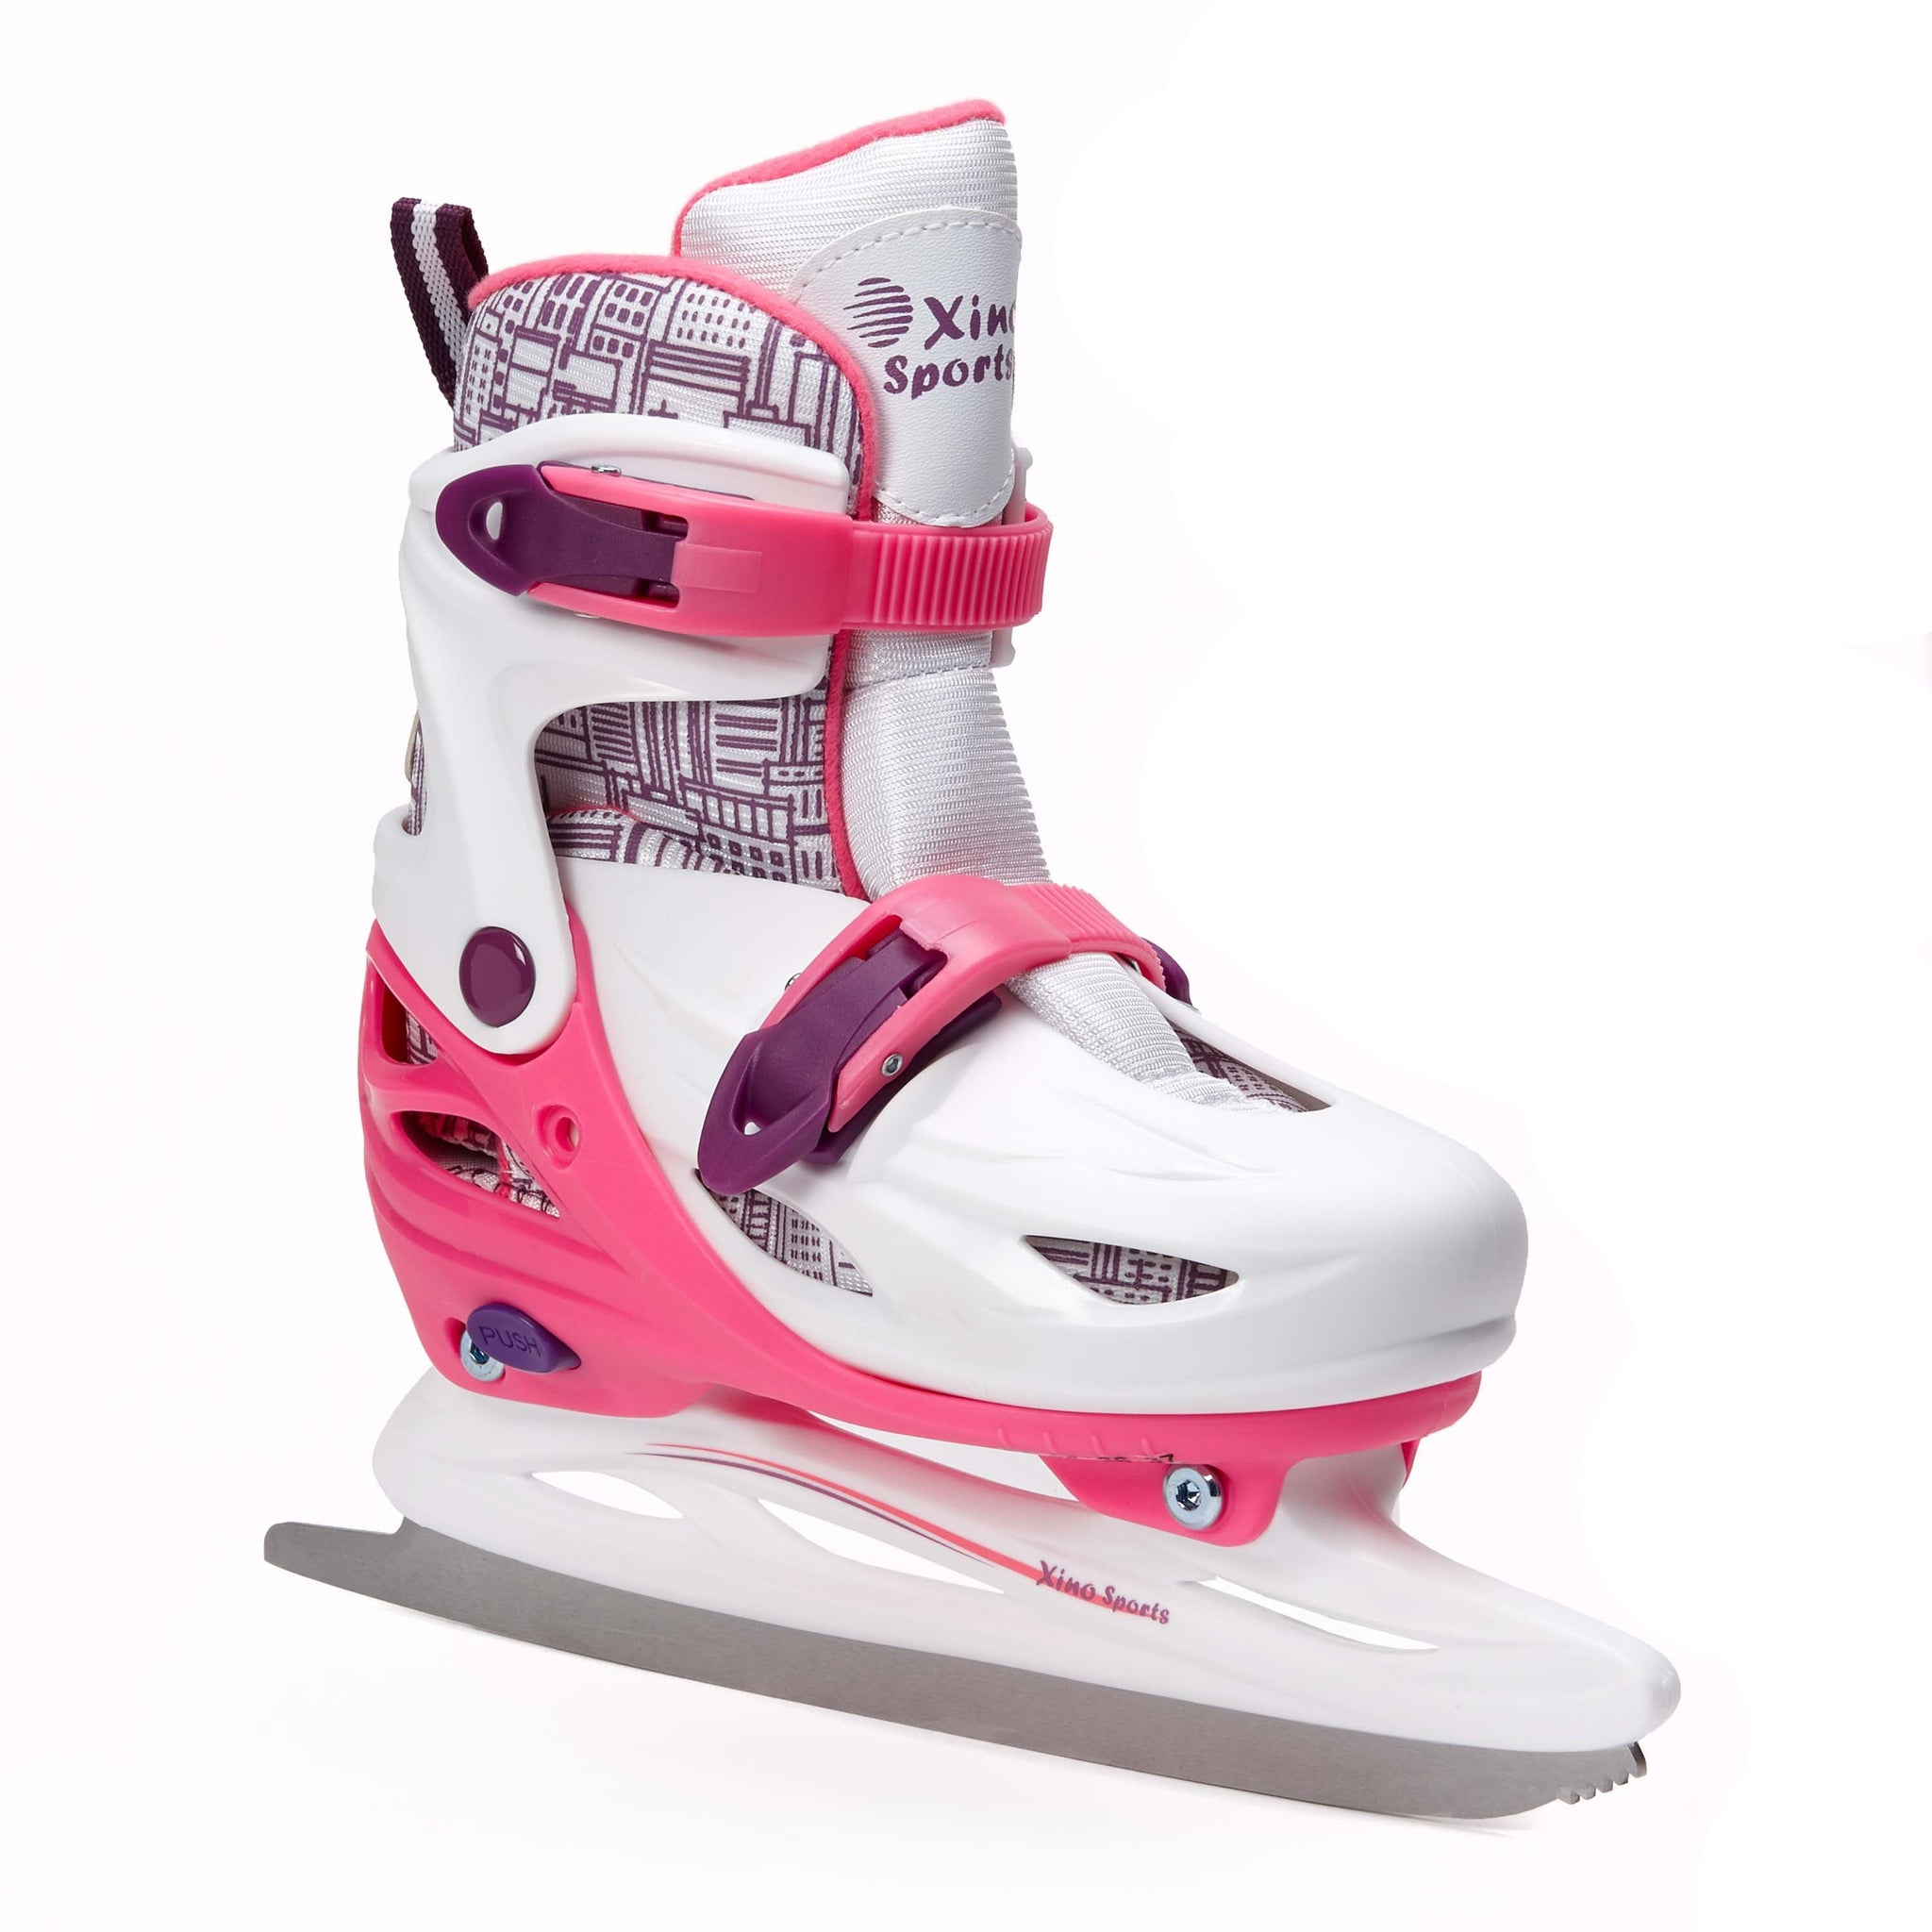 XinoSports Premium Adjustable Ice Skates for Boys and Girls, Two Awesome Colors - Blue and Pink, Padding and Reinforced Ankle Support, Fun to Skate! - Xino Sports